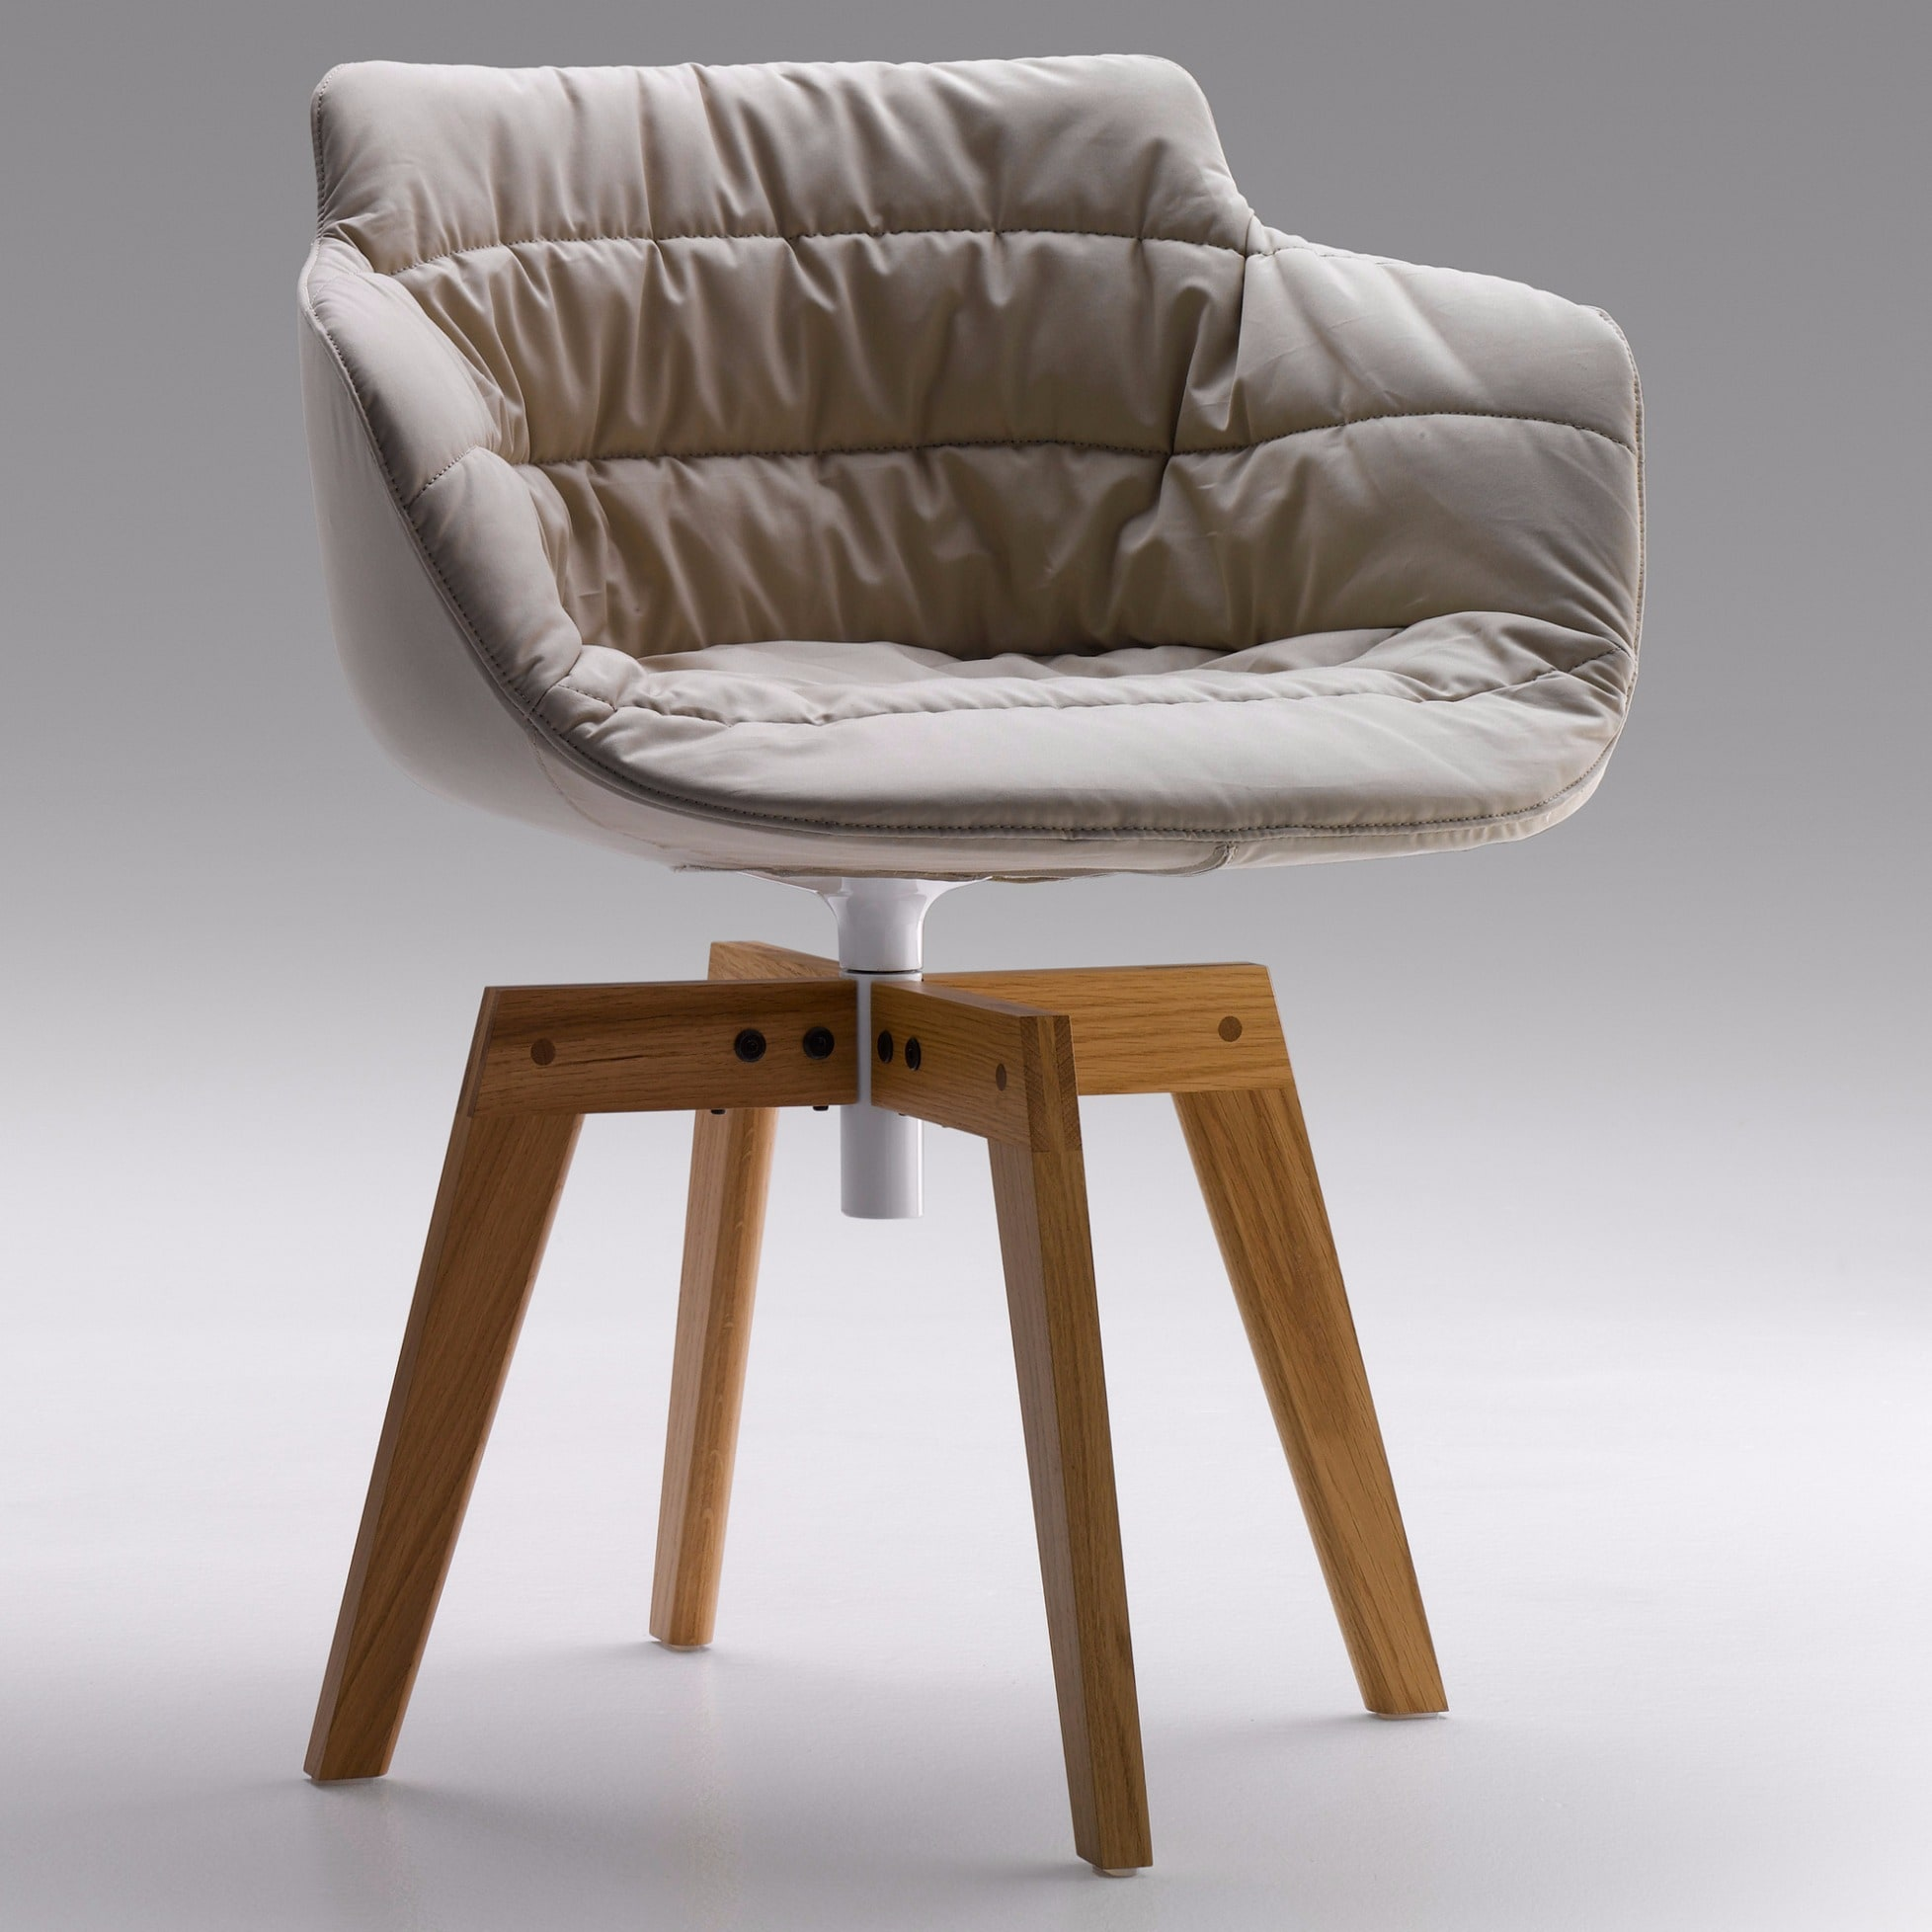 Flow armchair mit eichengestell von mdf italia for Mdfitalia it